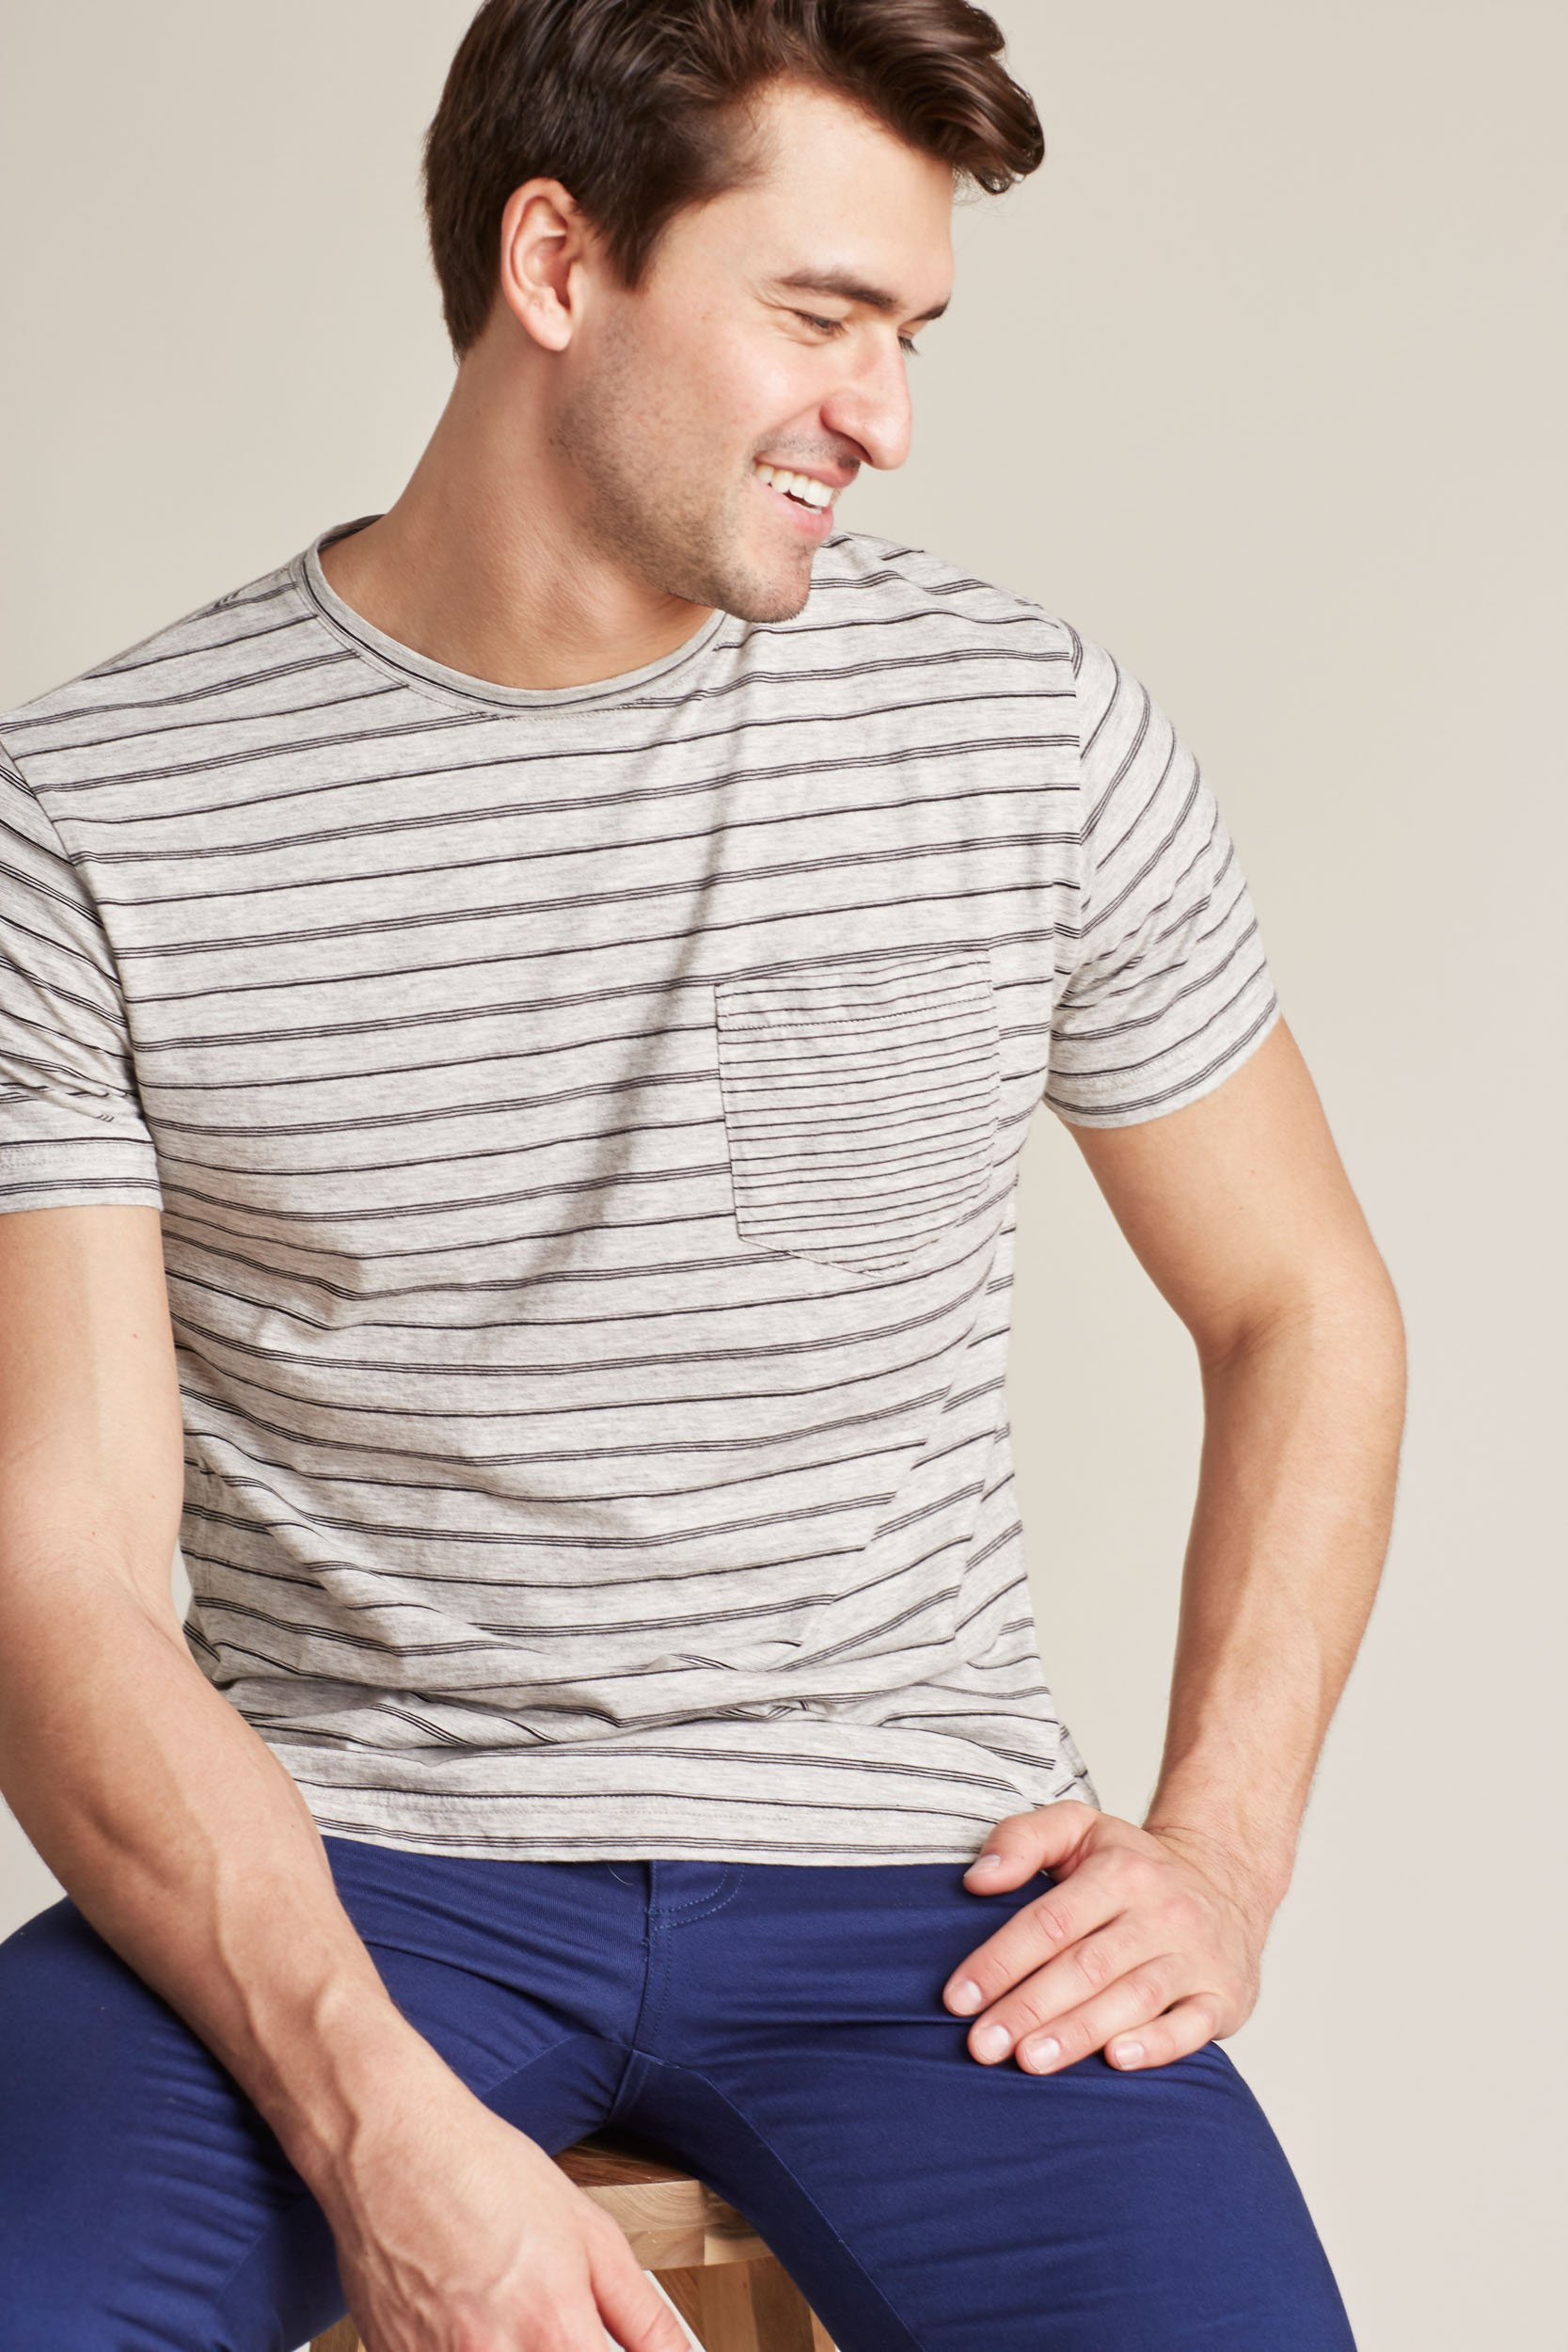 Sustainable Fashion for Men